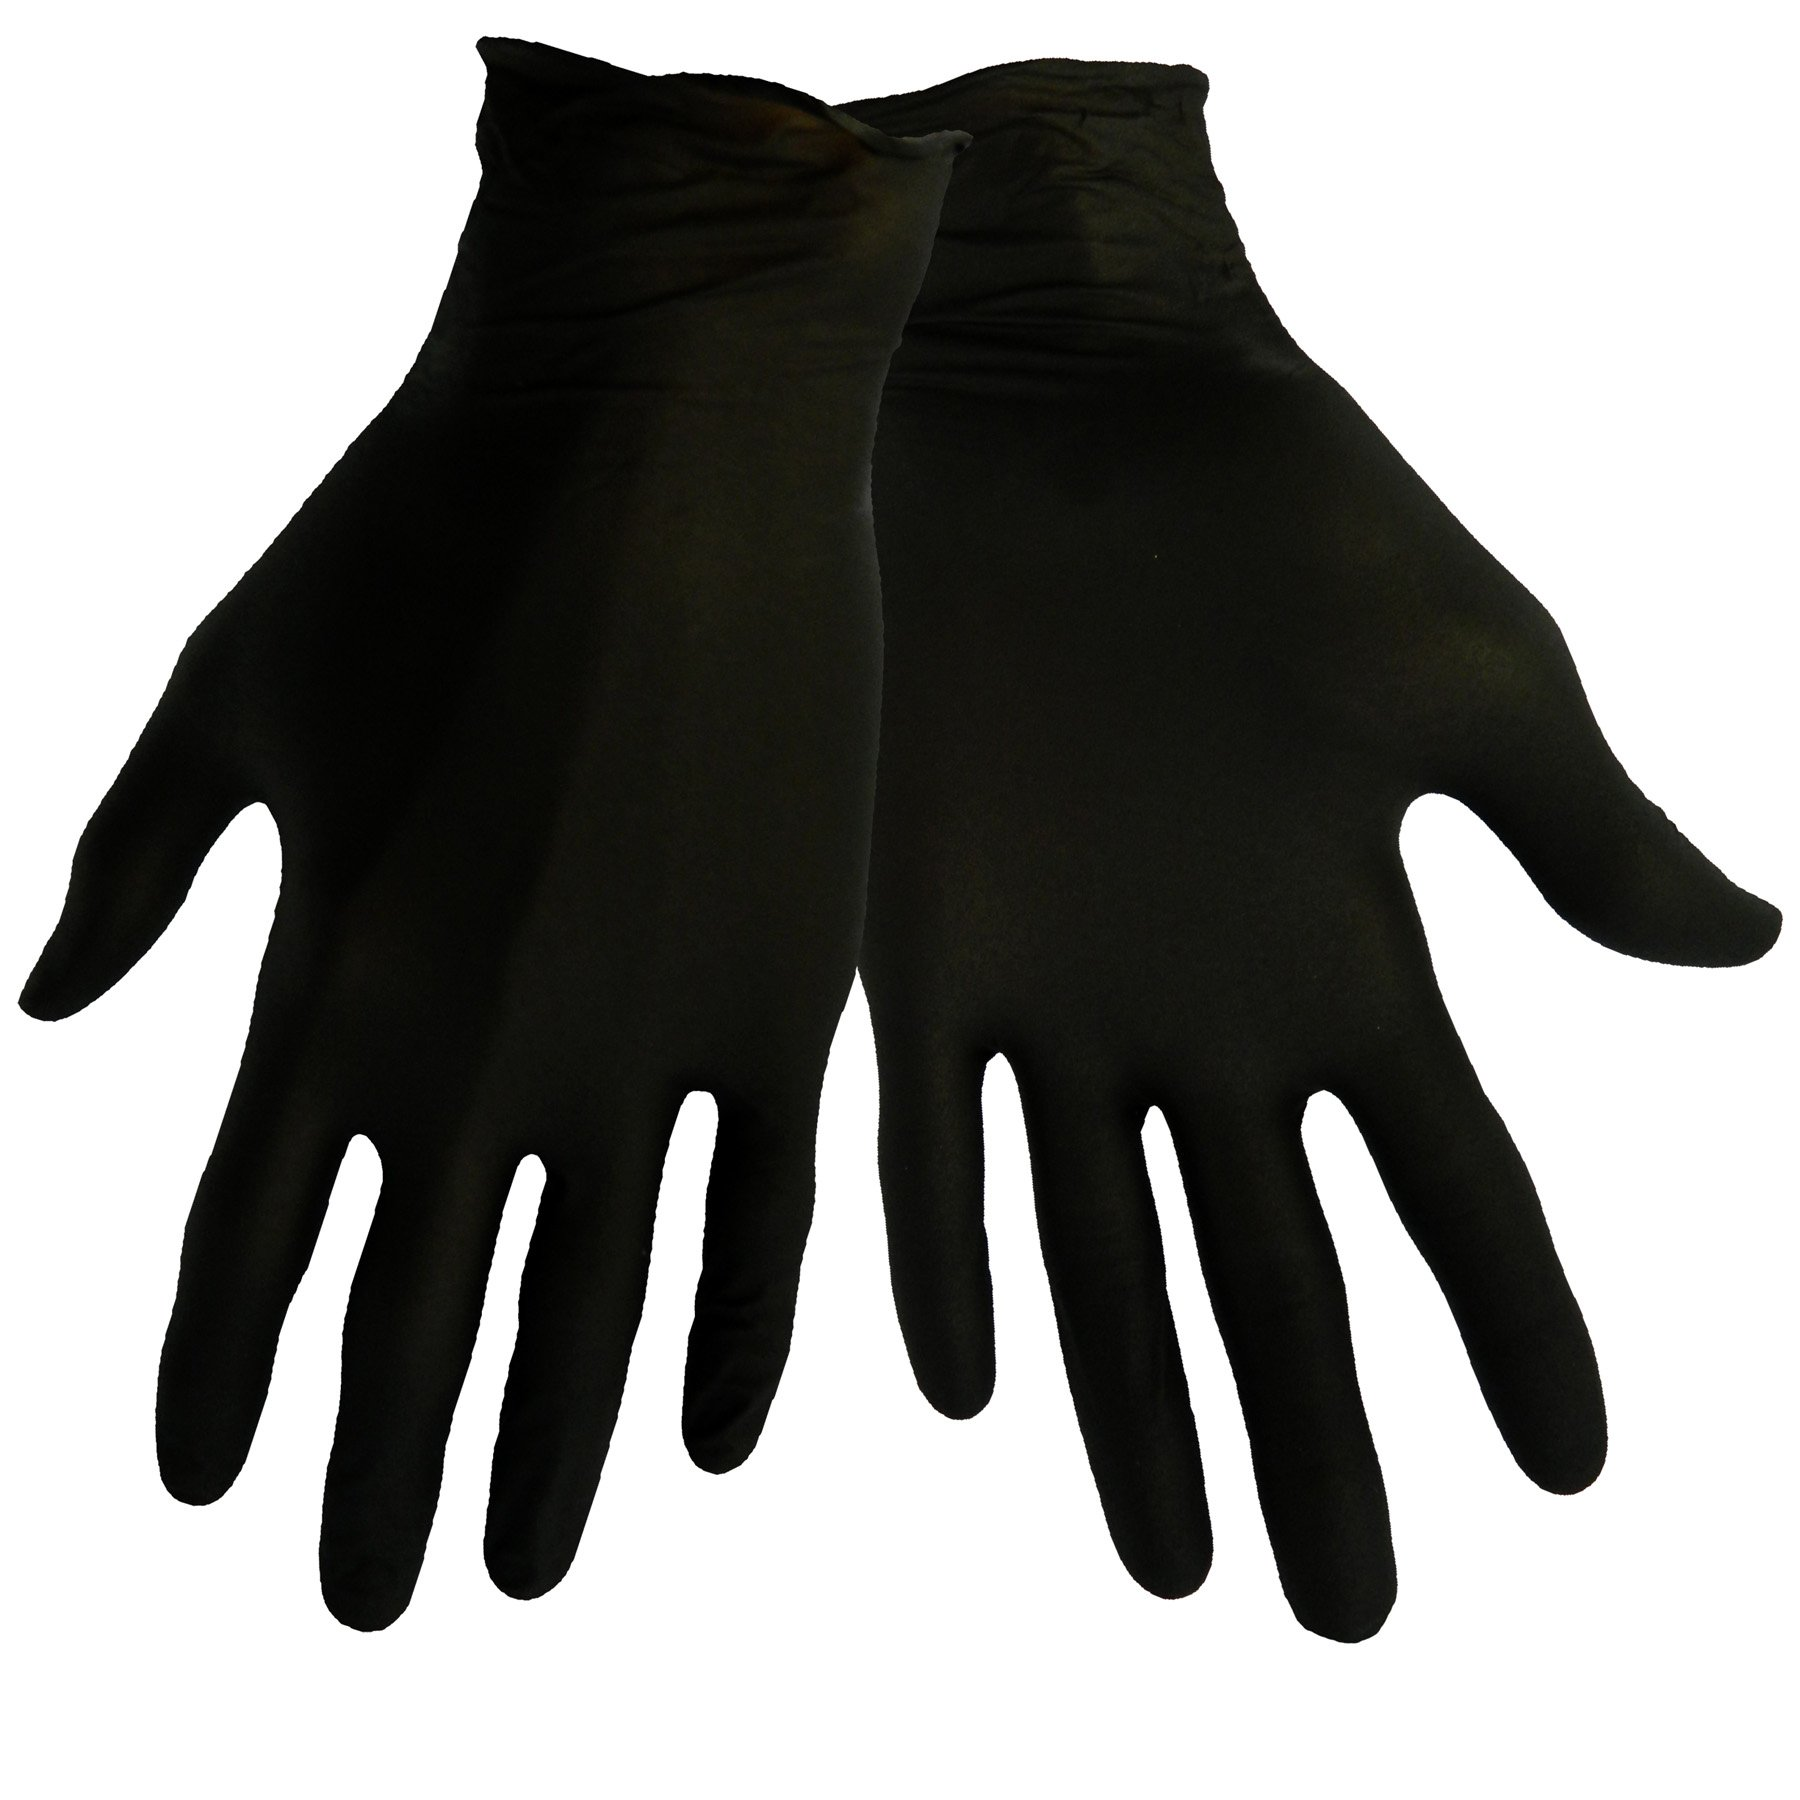 Global Glove 705BPF Nitrile Glove, Disposable, Powder Free, 5 mils Thick, Small, Black (Case of 500) by Global Glove